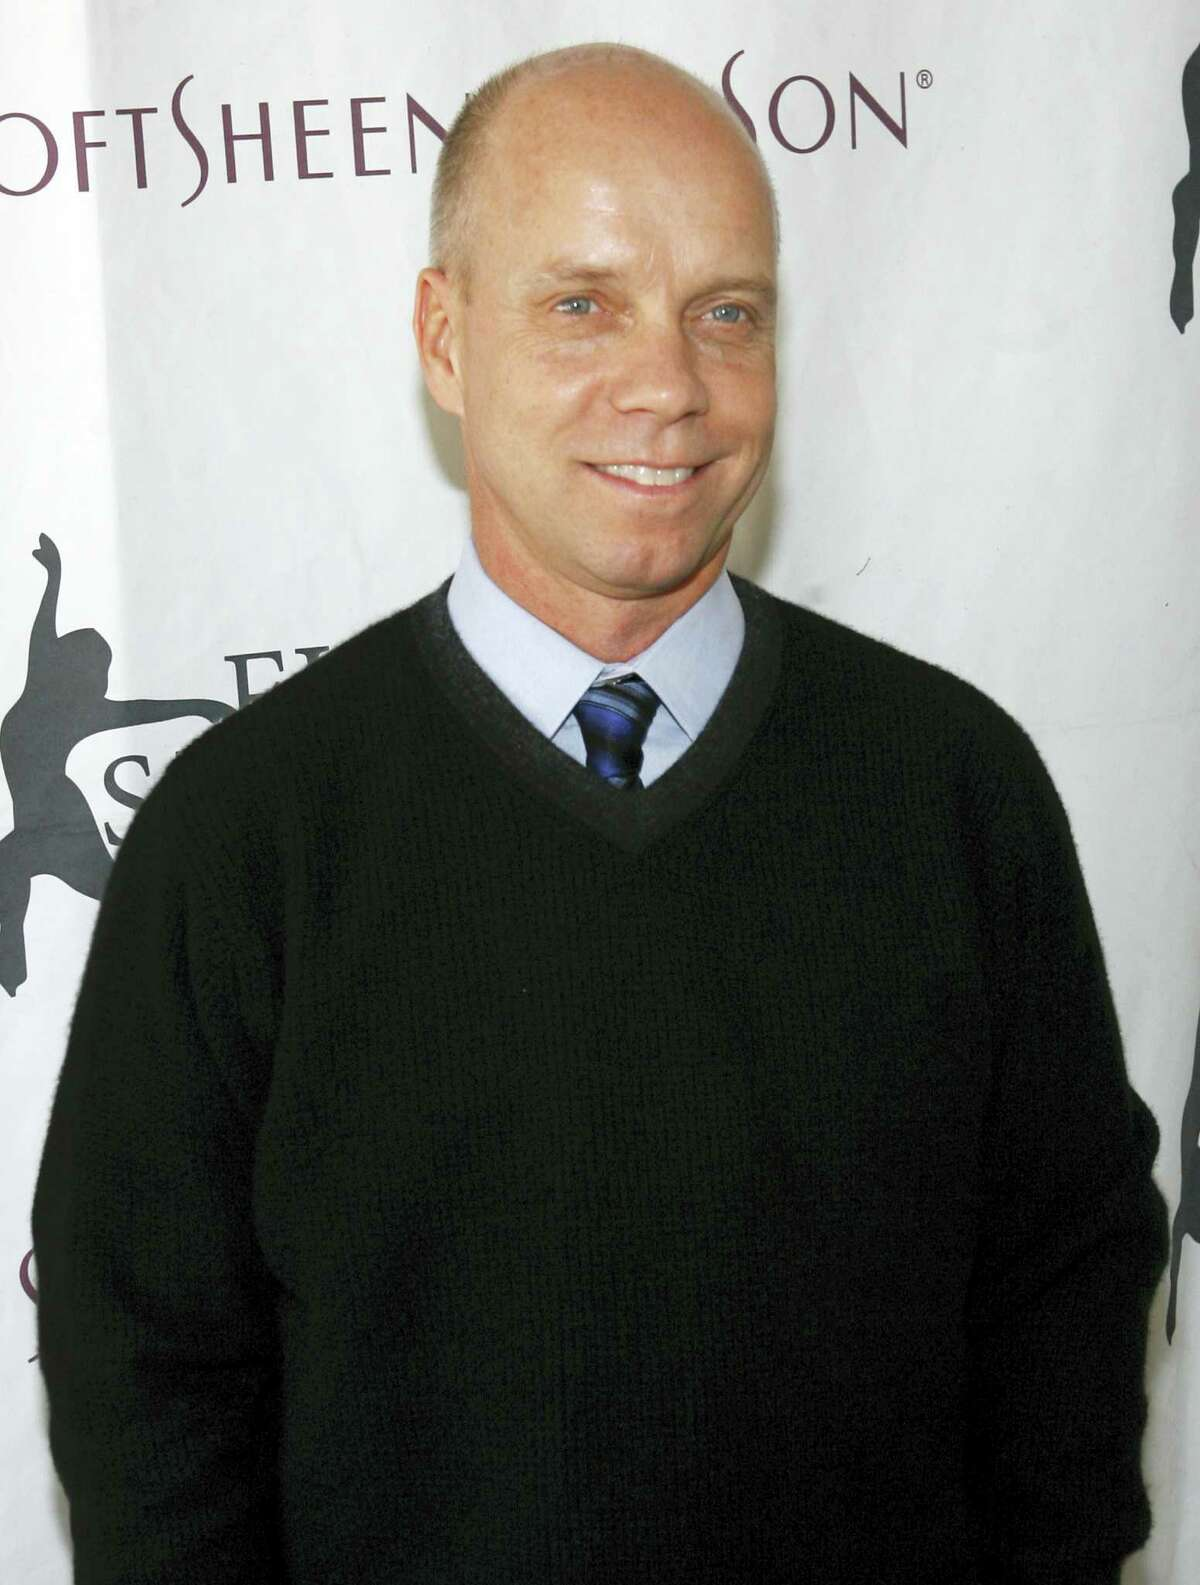 """In this April 9, 2007 photo, former Olympic figure skating gold medalist Scott Hamilton arrives for Figure Skating In Harlem's annual gala """"Skating with the Stars"""" at Central Park's Wollman Rink in New York. Hamilton told People magazine for a story published online on Oct. 23, 2016, that he has been diagnosed with another brain tumor."""